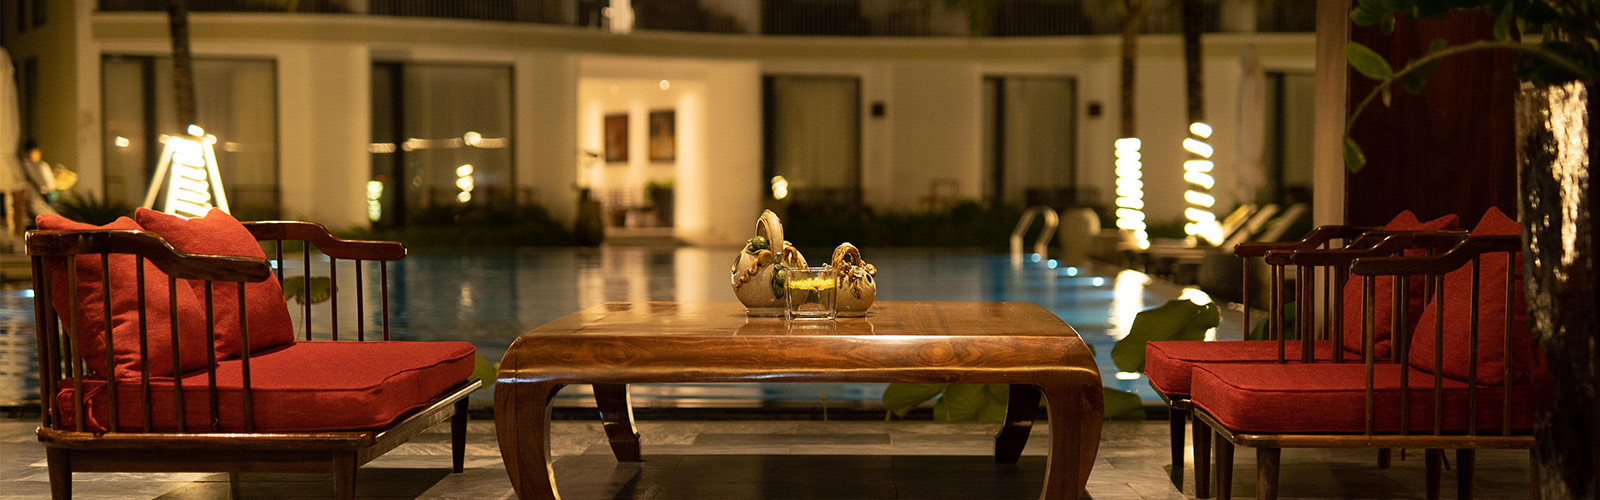 About Palmy Phu Quoc Resort in Phu Quoc